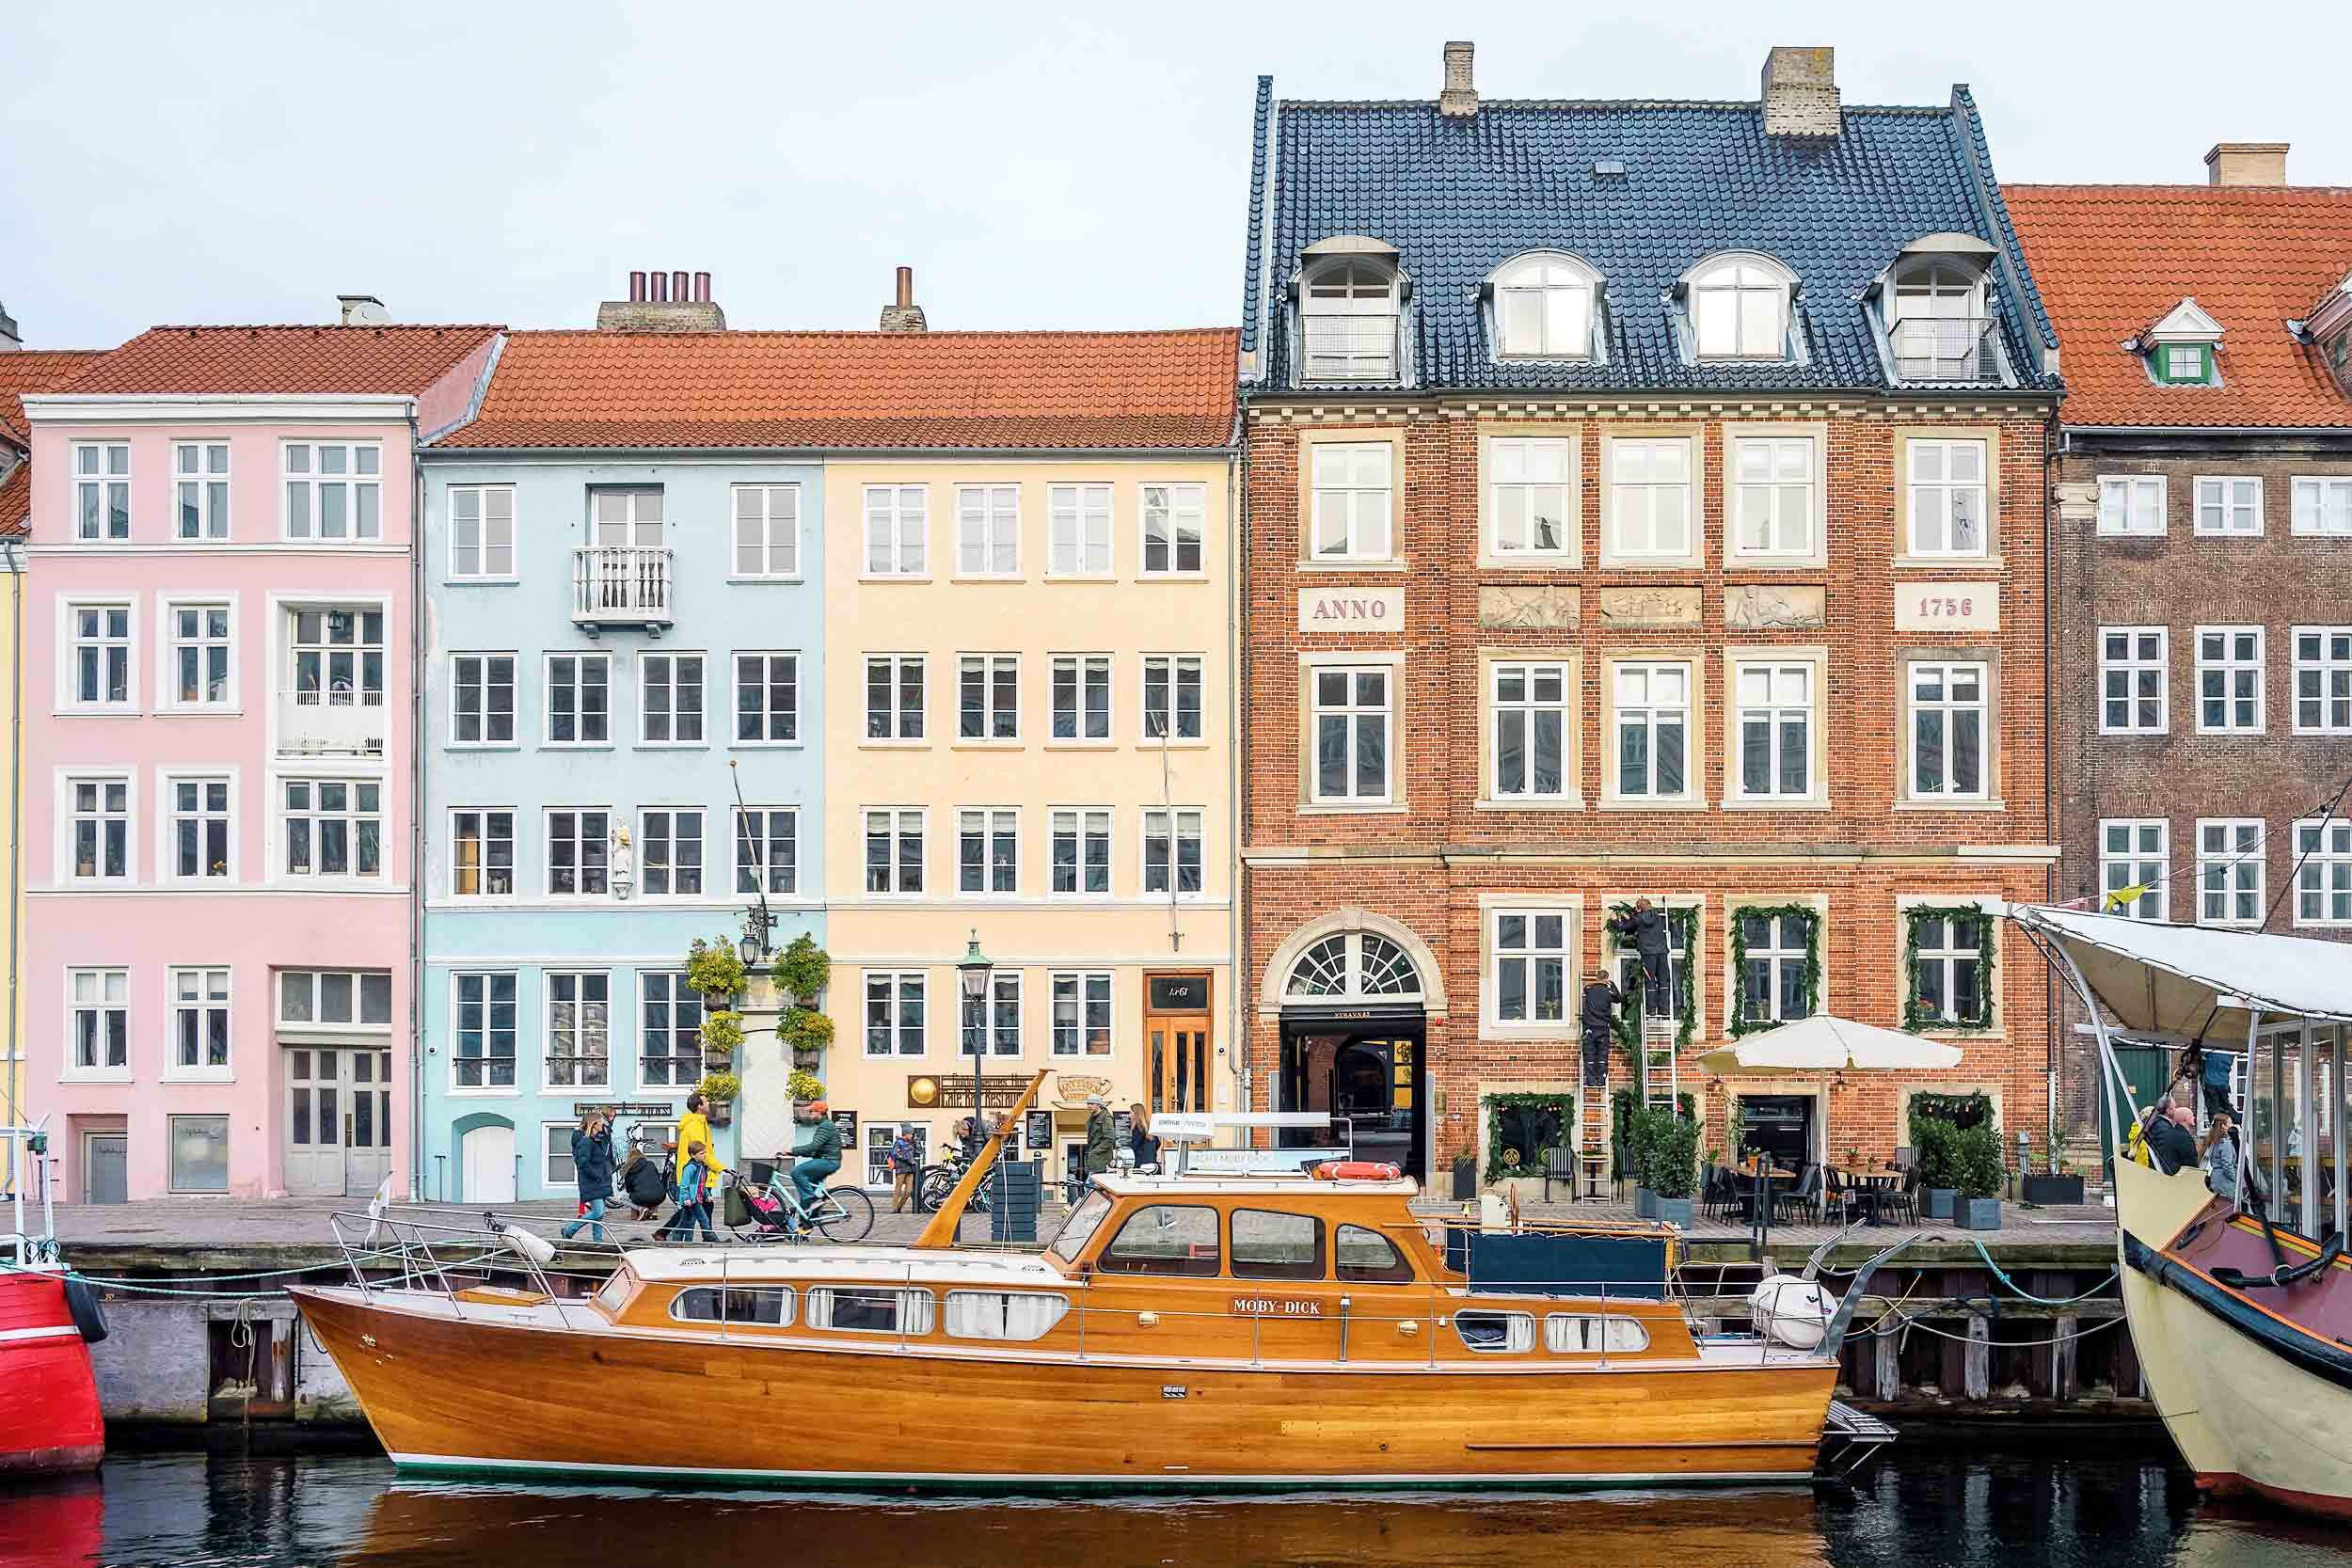 The colorful waterfront of Nyhavn in Copenhagen